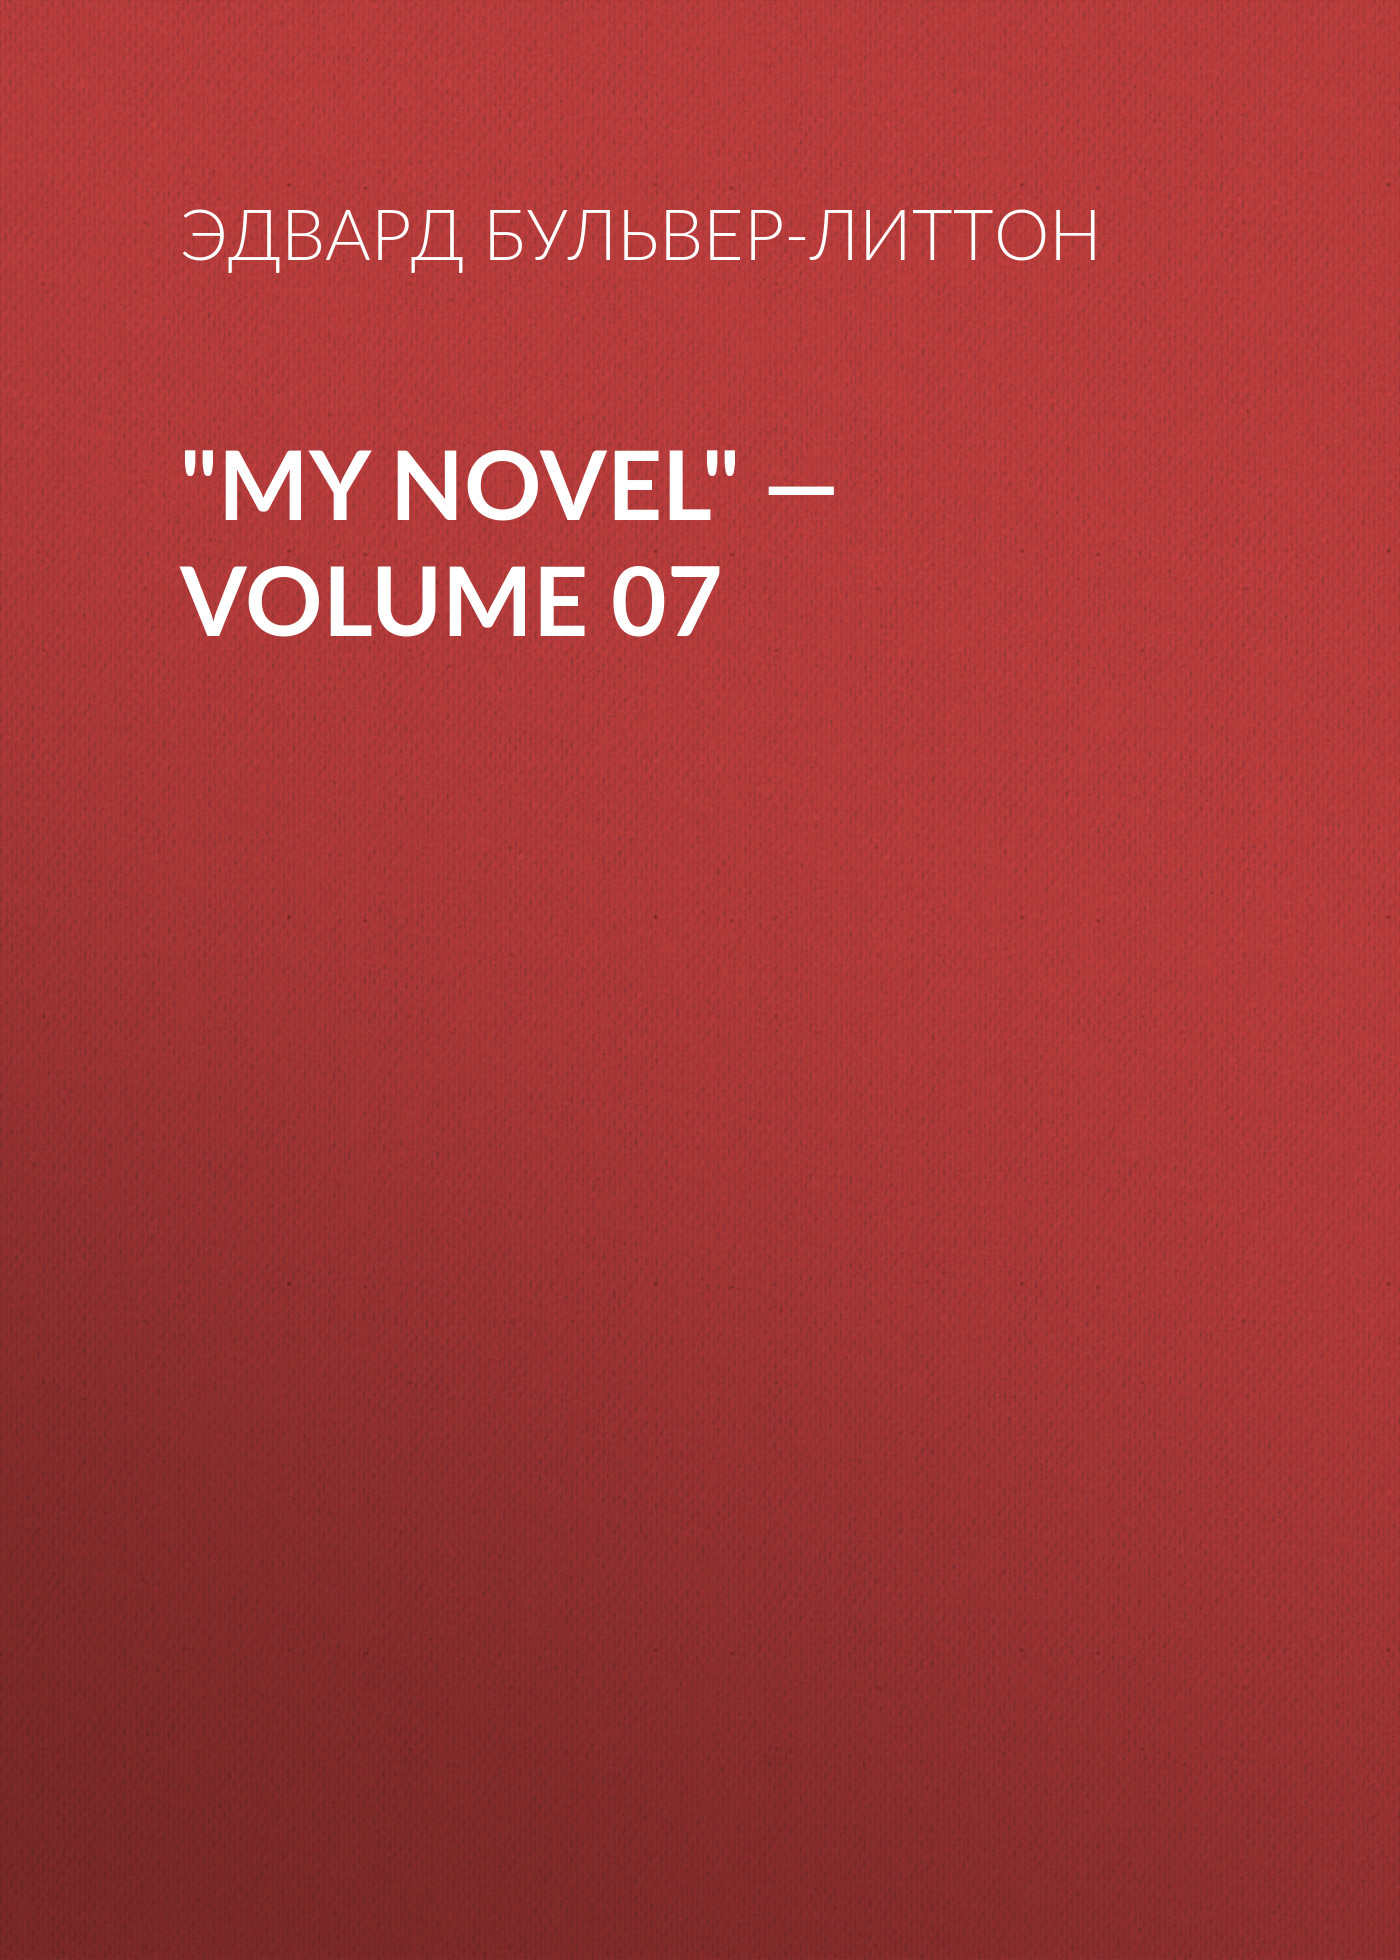 Эдвард Бульвер-Литтон My Novel — Volume 07 эдвард бульвер литтон my novel volume 05